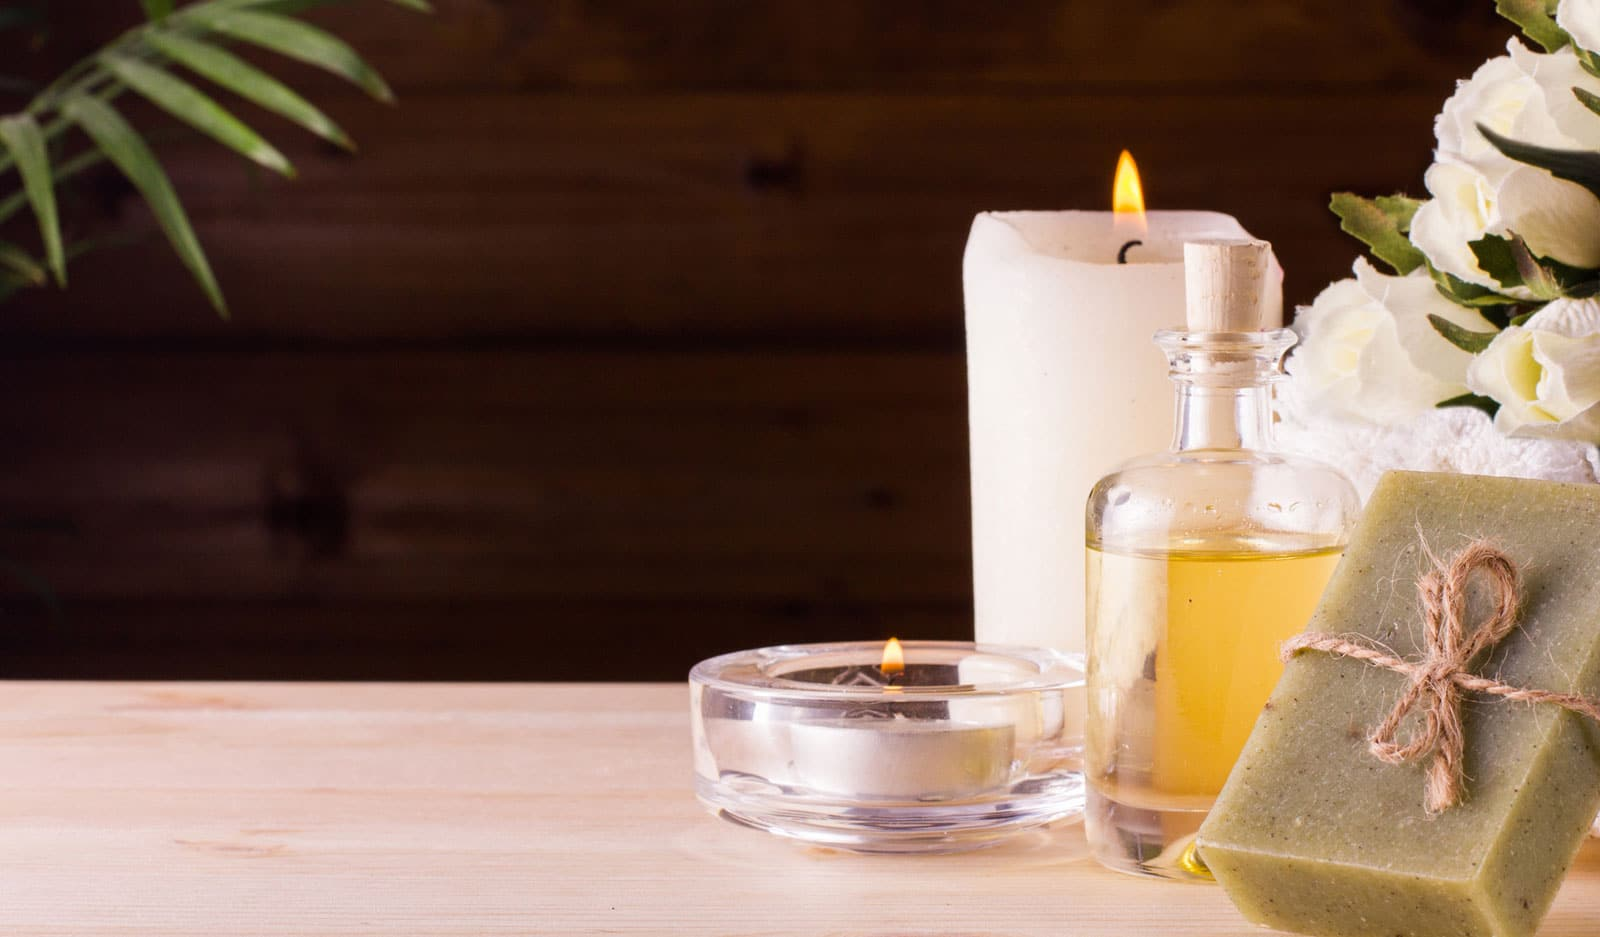 A table with a candle, herbal soap a flower and a Essential oil